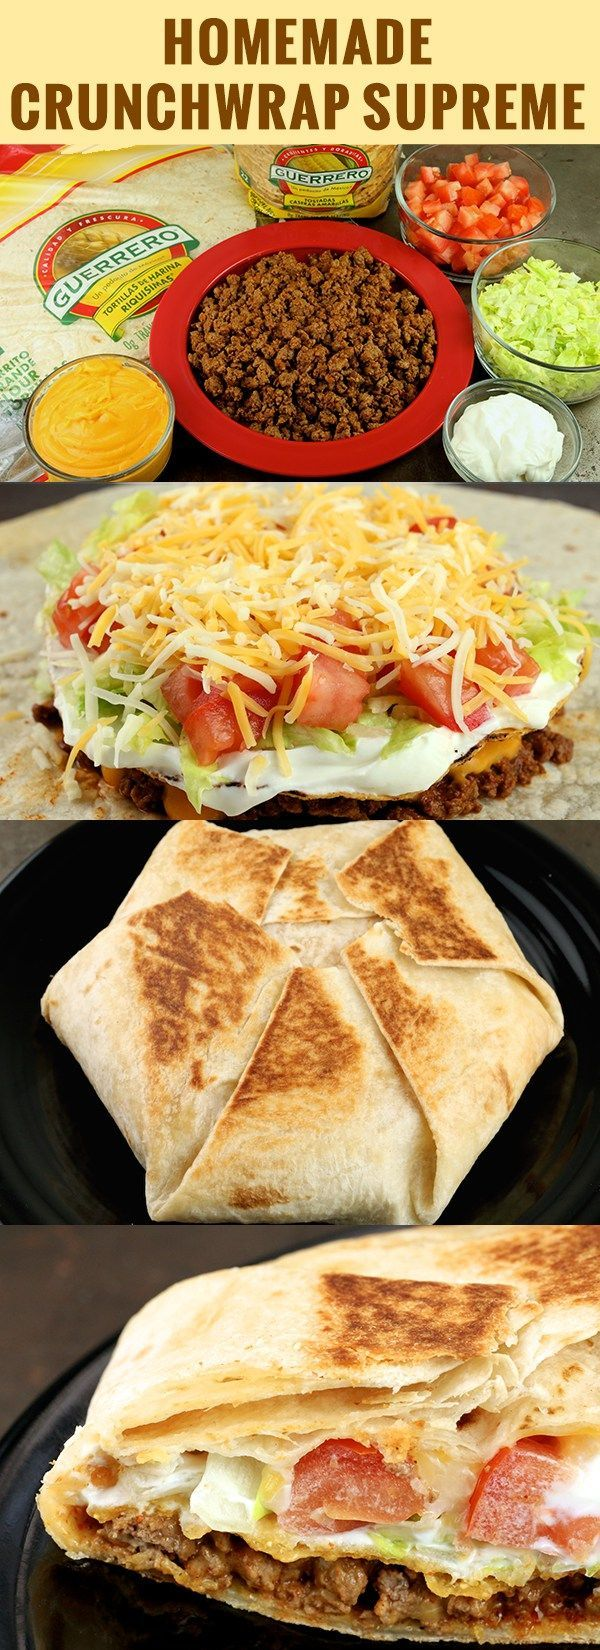 What's better than Taco Bell? Homemade Taco Bell! Make a delicious Crunchwrap Supreme at home with this easy to follow recipe.